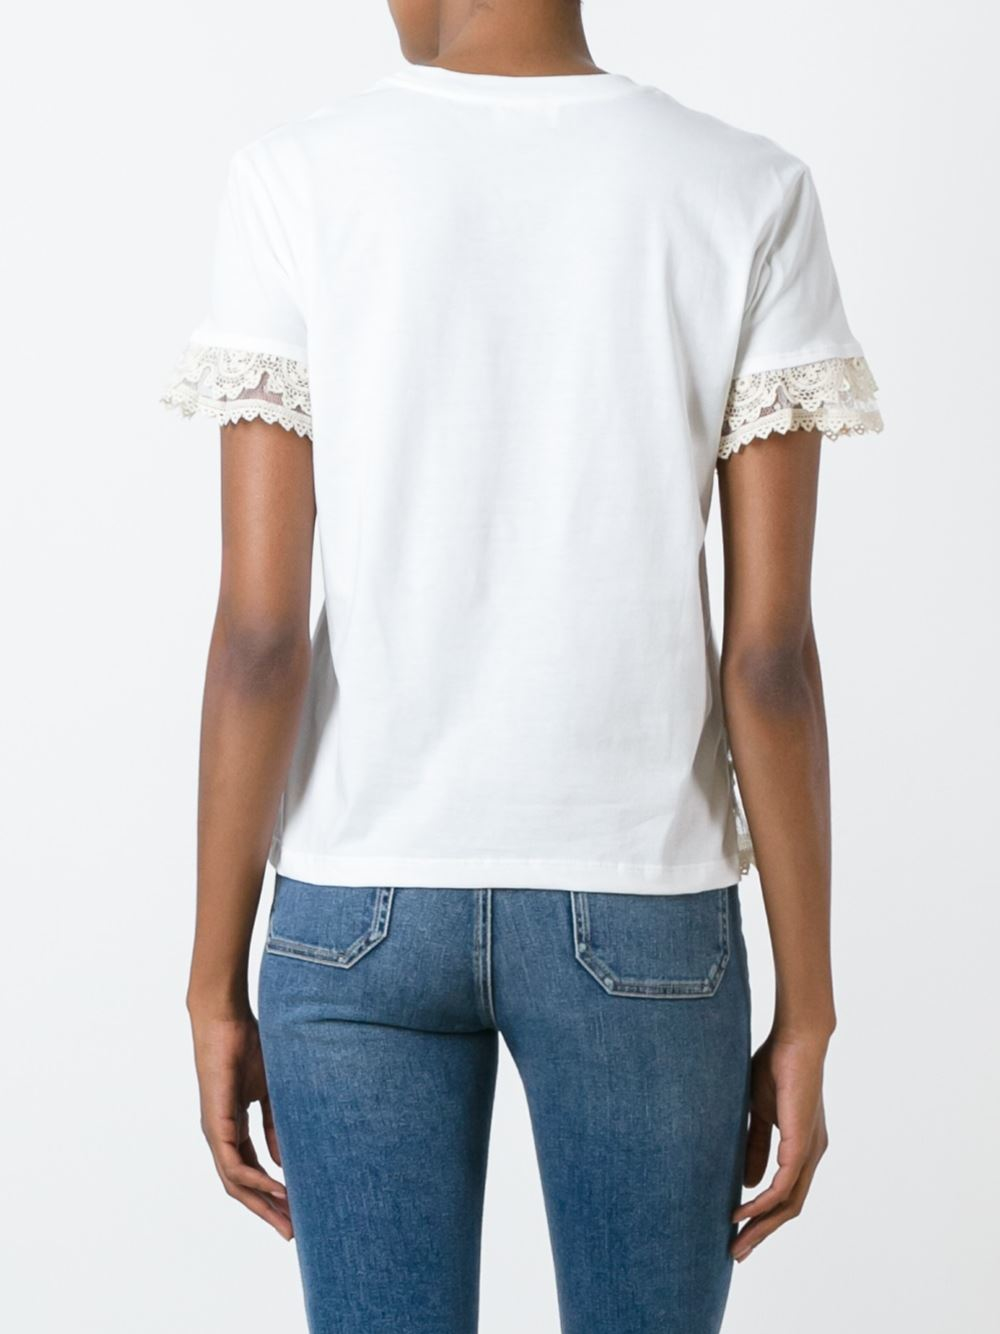 Lyst red valentino lace detail t shirt in white for Red valentino t shirt